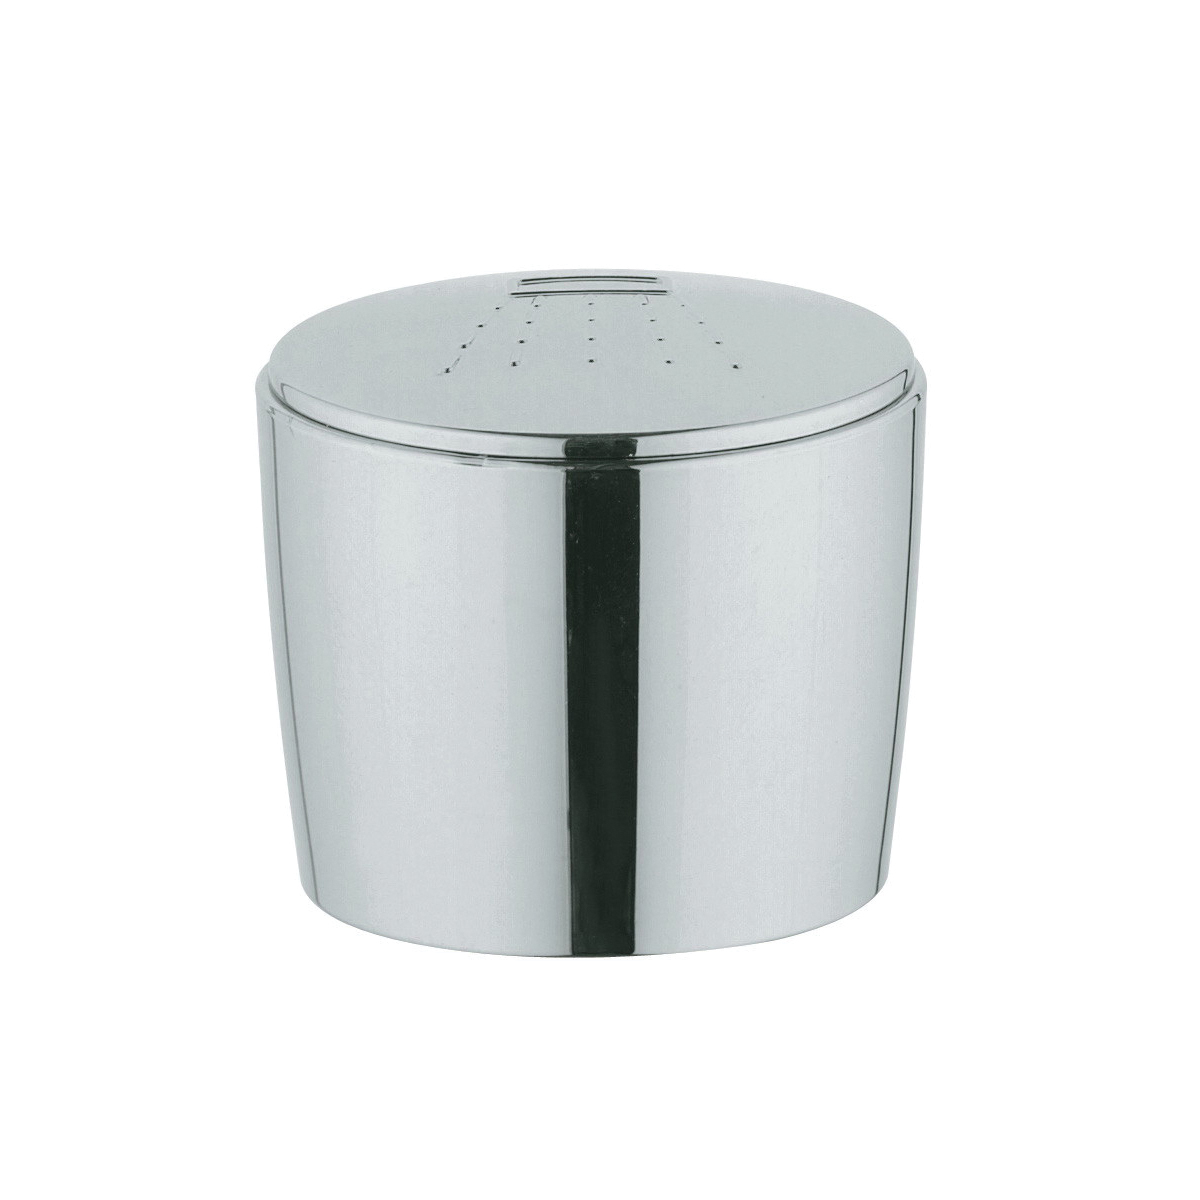 GROHE 46007000 Diverter Knob, For Use With: 13600 6 in Diverter Tub Spout, StarLight® Chrome Plated